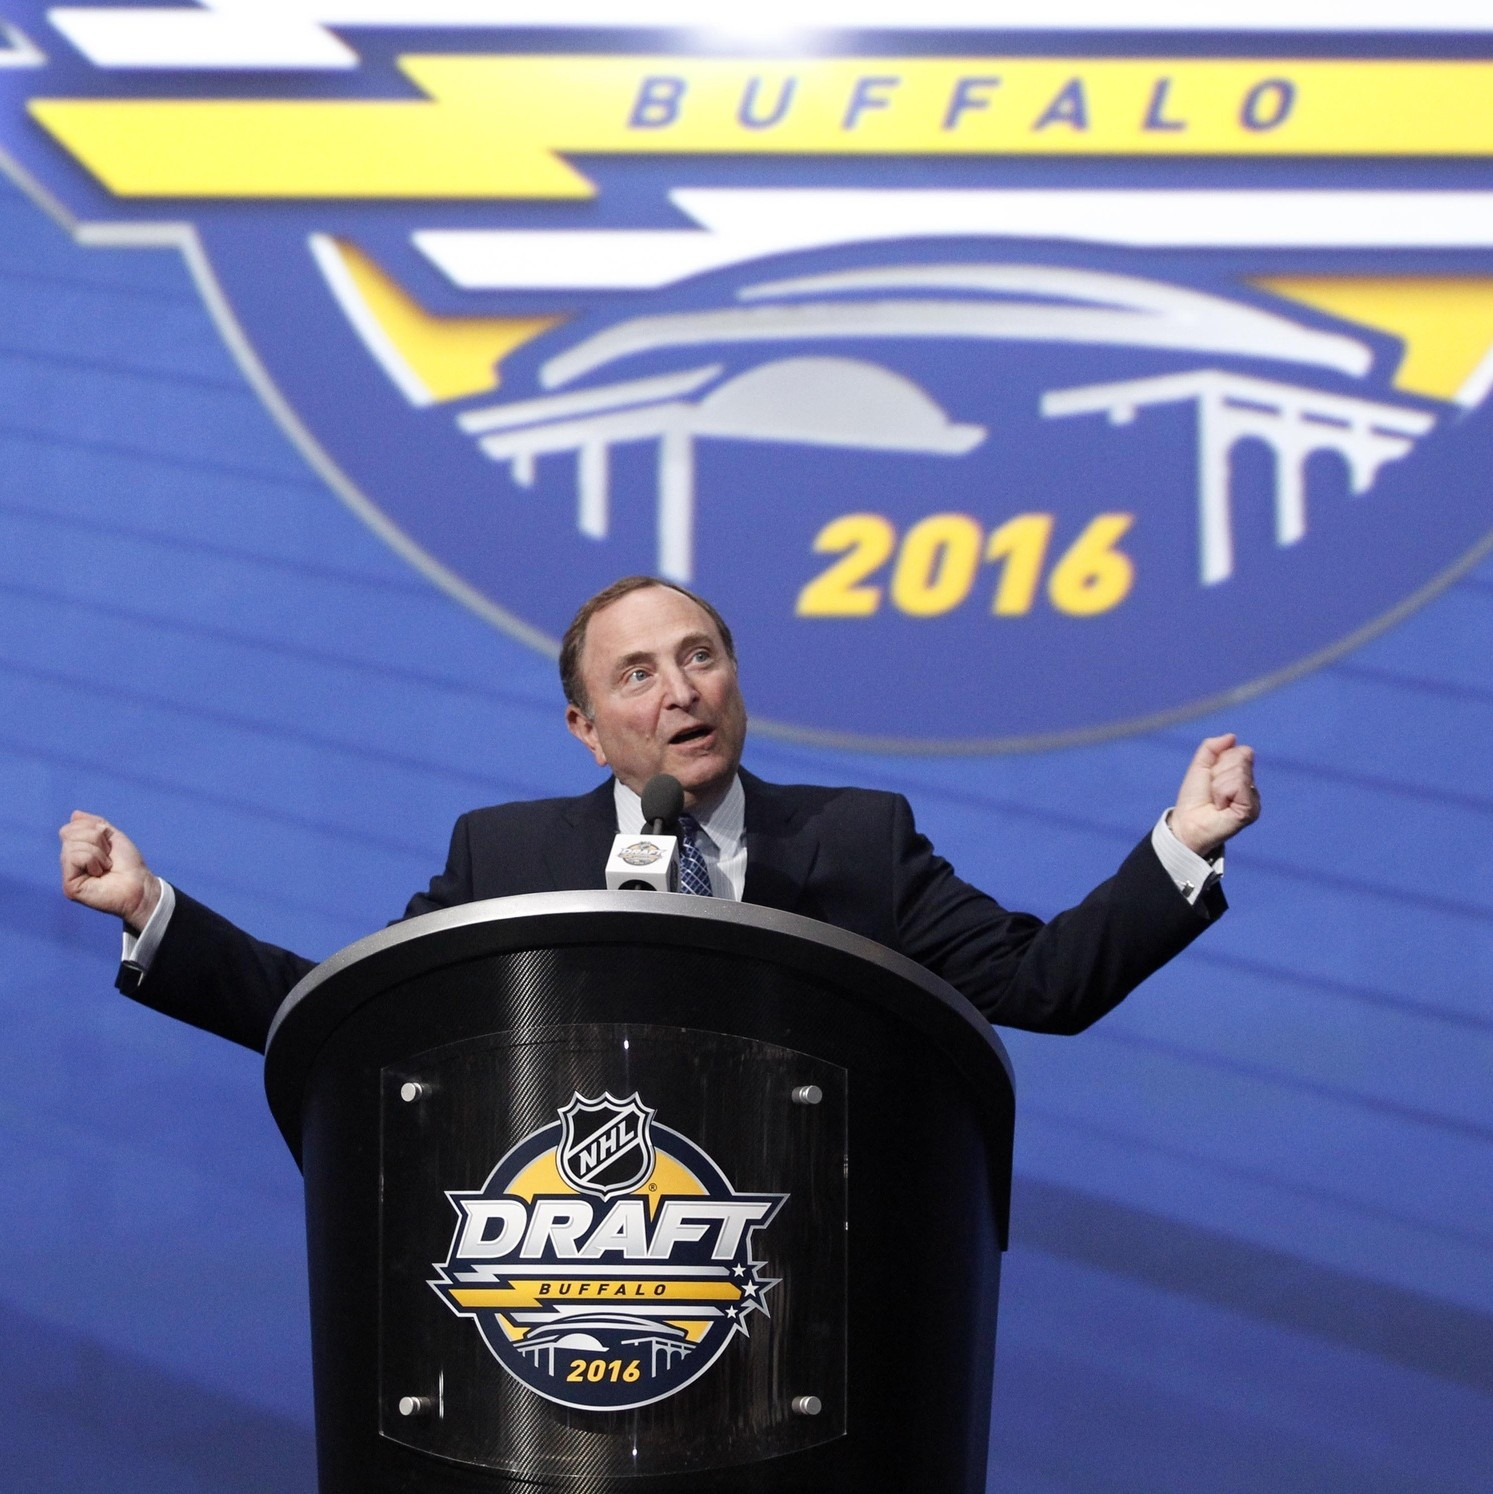 How-the-nhl-draft-is-made-1467218879.jpg?crop=0